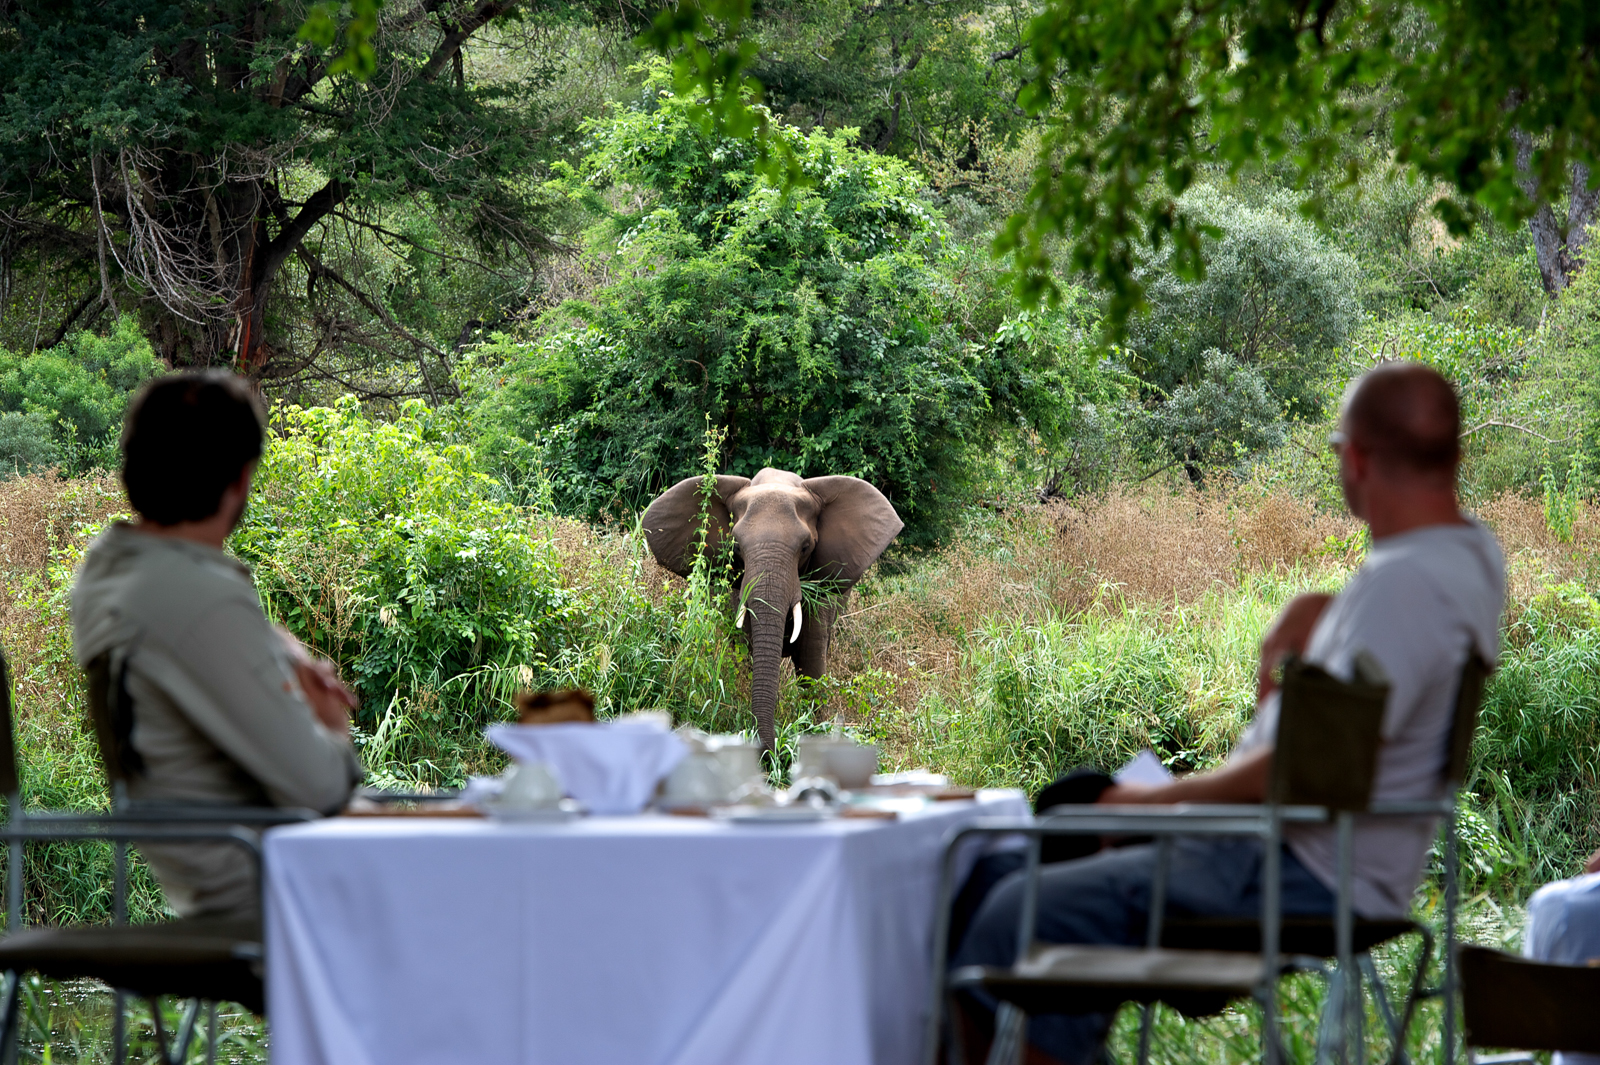 South Africa Safari - African Travel Company